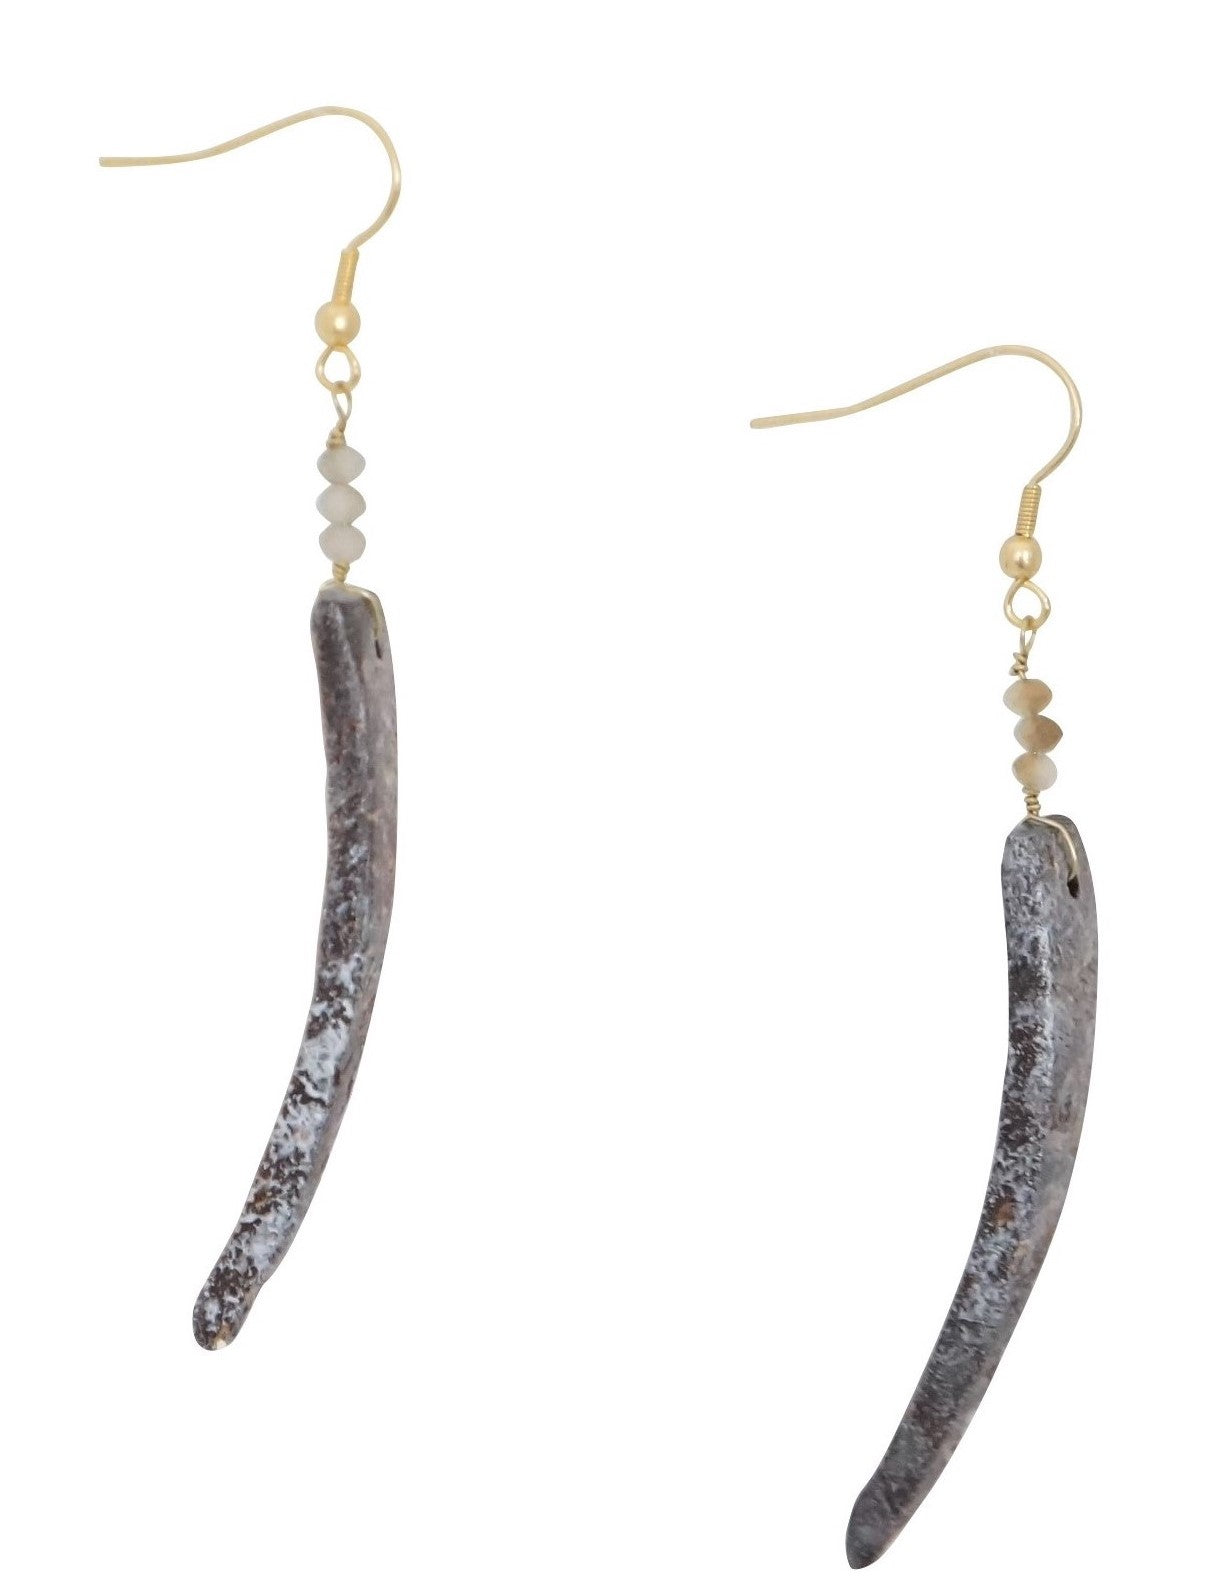 Warrior Earrings - Carolyn Hearn Designs